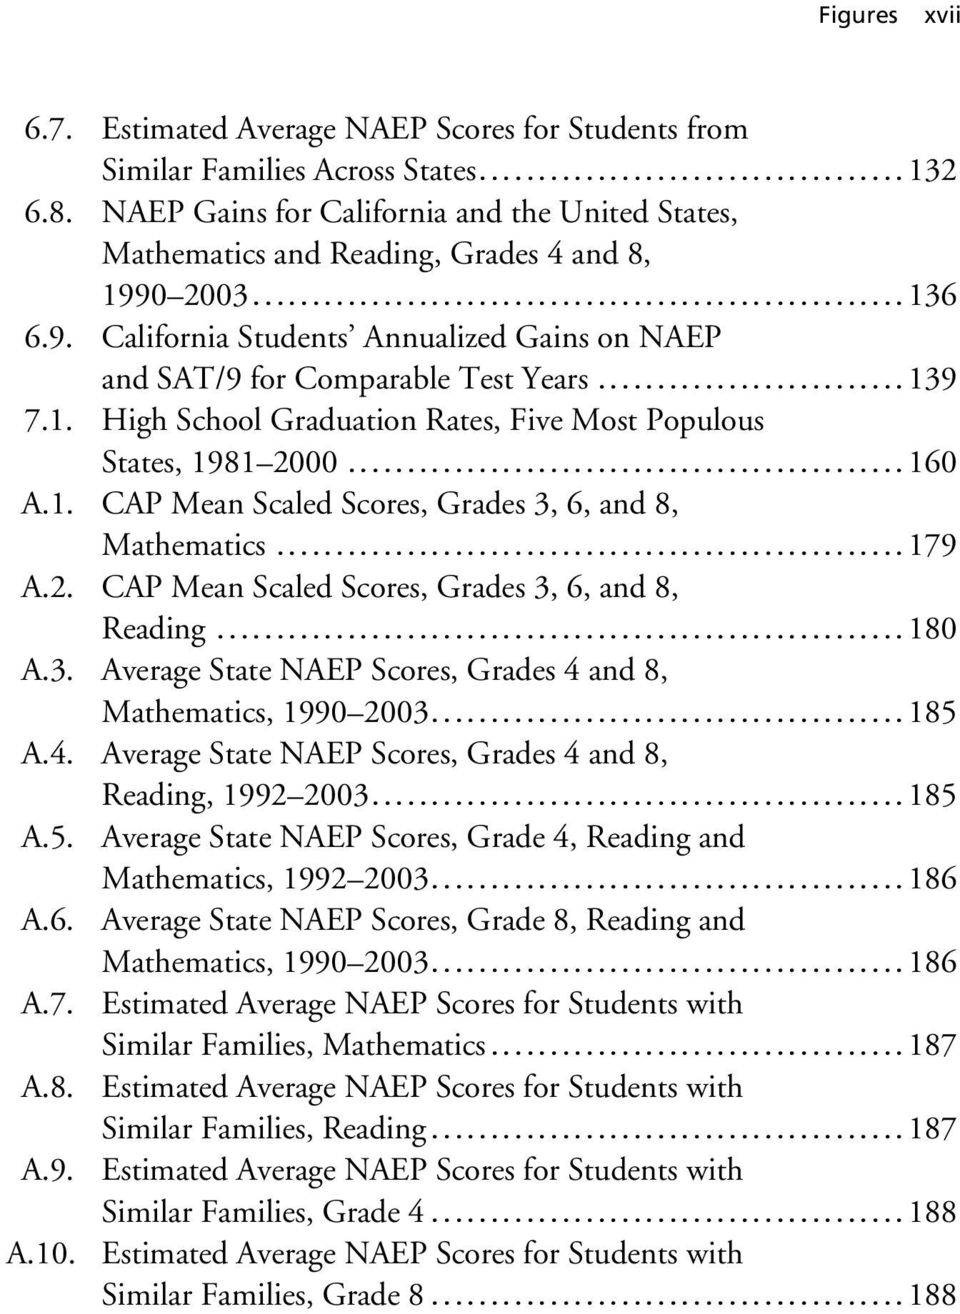 1. High School Graduation Rates, Five Most Populous States, 1981 2000...160 A.1. CAP Mean Scaled Scores, Grades 3, 6, and 8, Mathematics...179 A.2. CAP Mean Scaled Scores, Grades 3, 6, and 8, Reading.